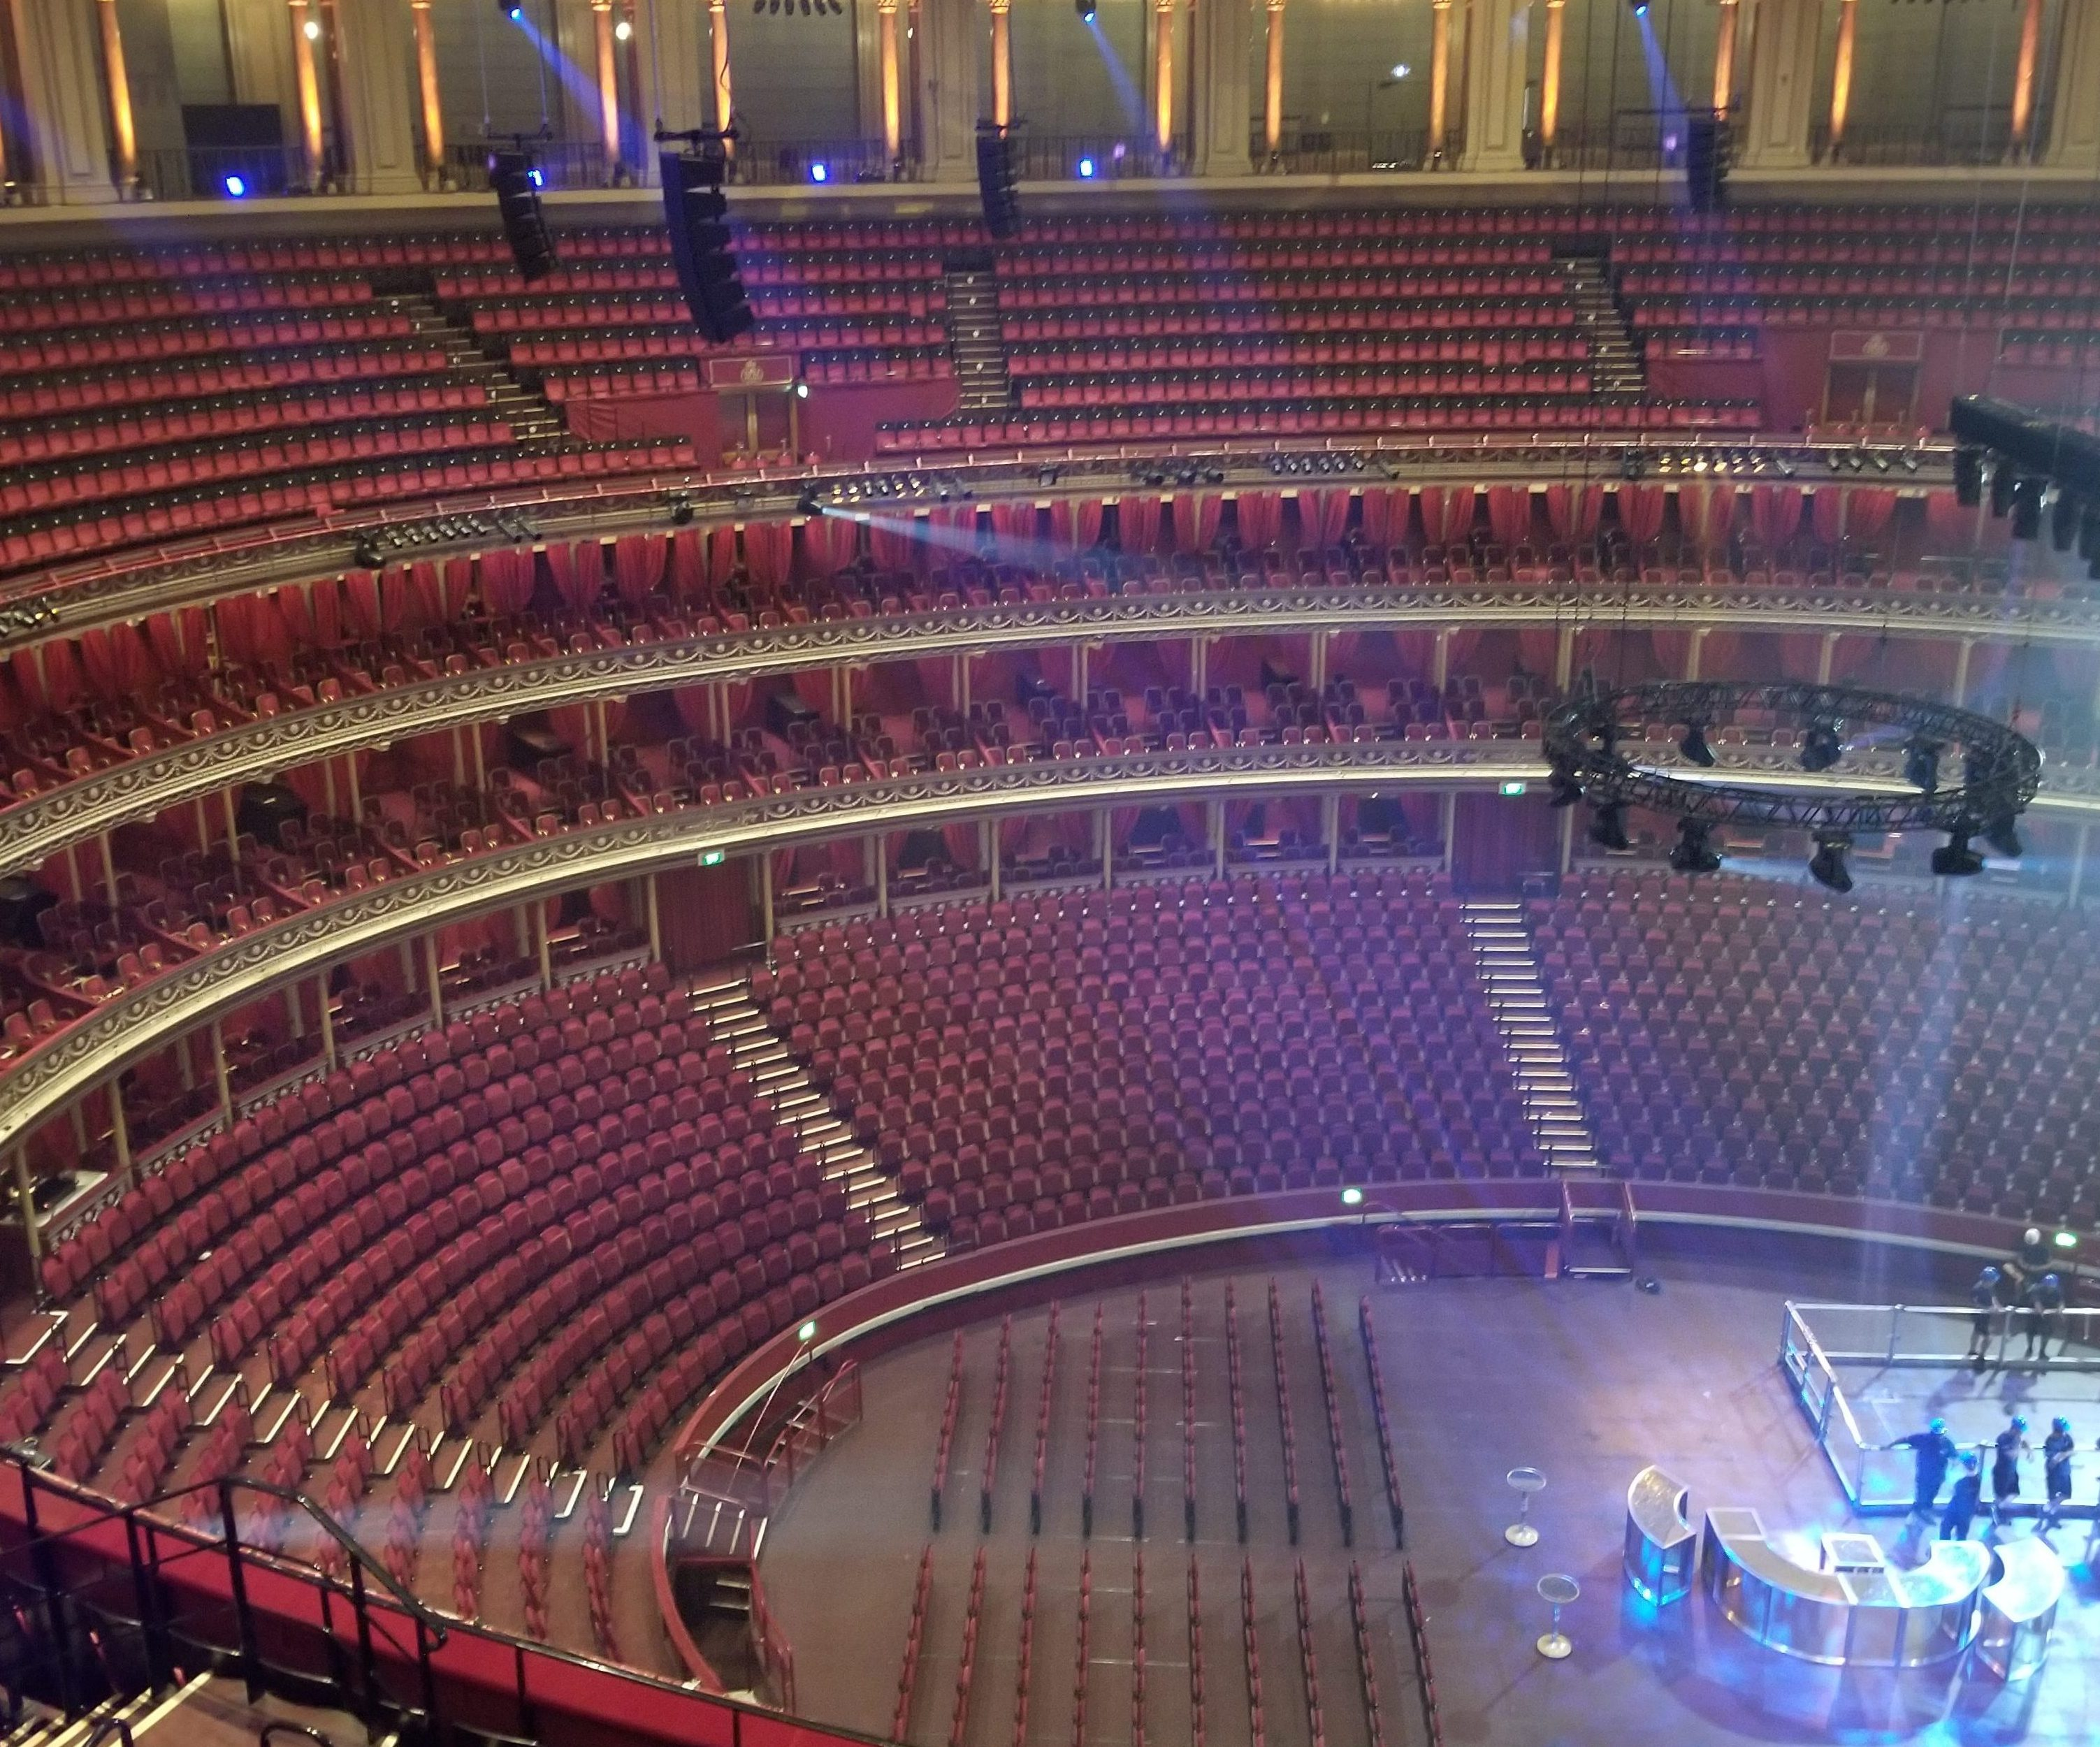 Royal Albert Hall supports those with dementia and Alzheimer